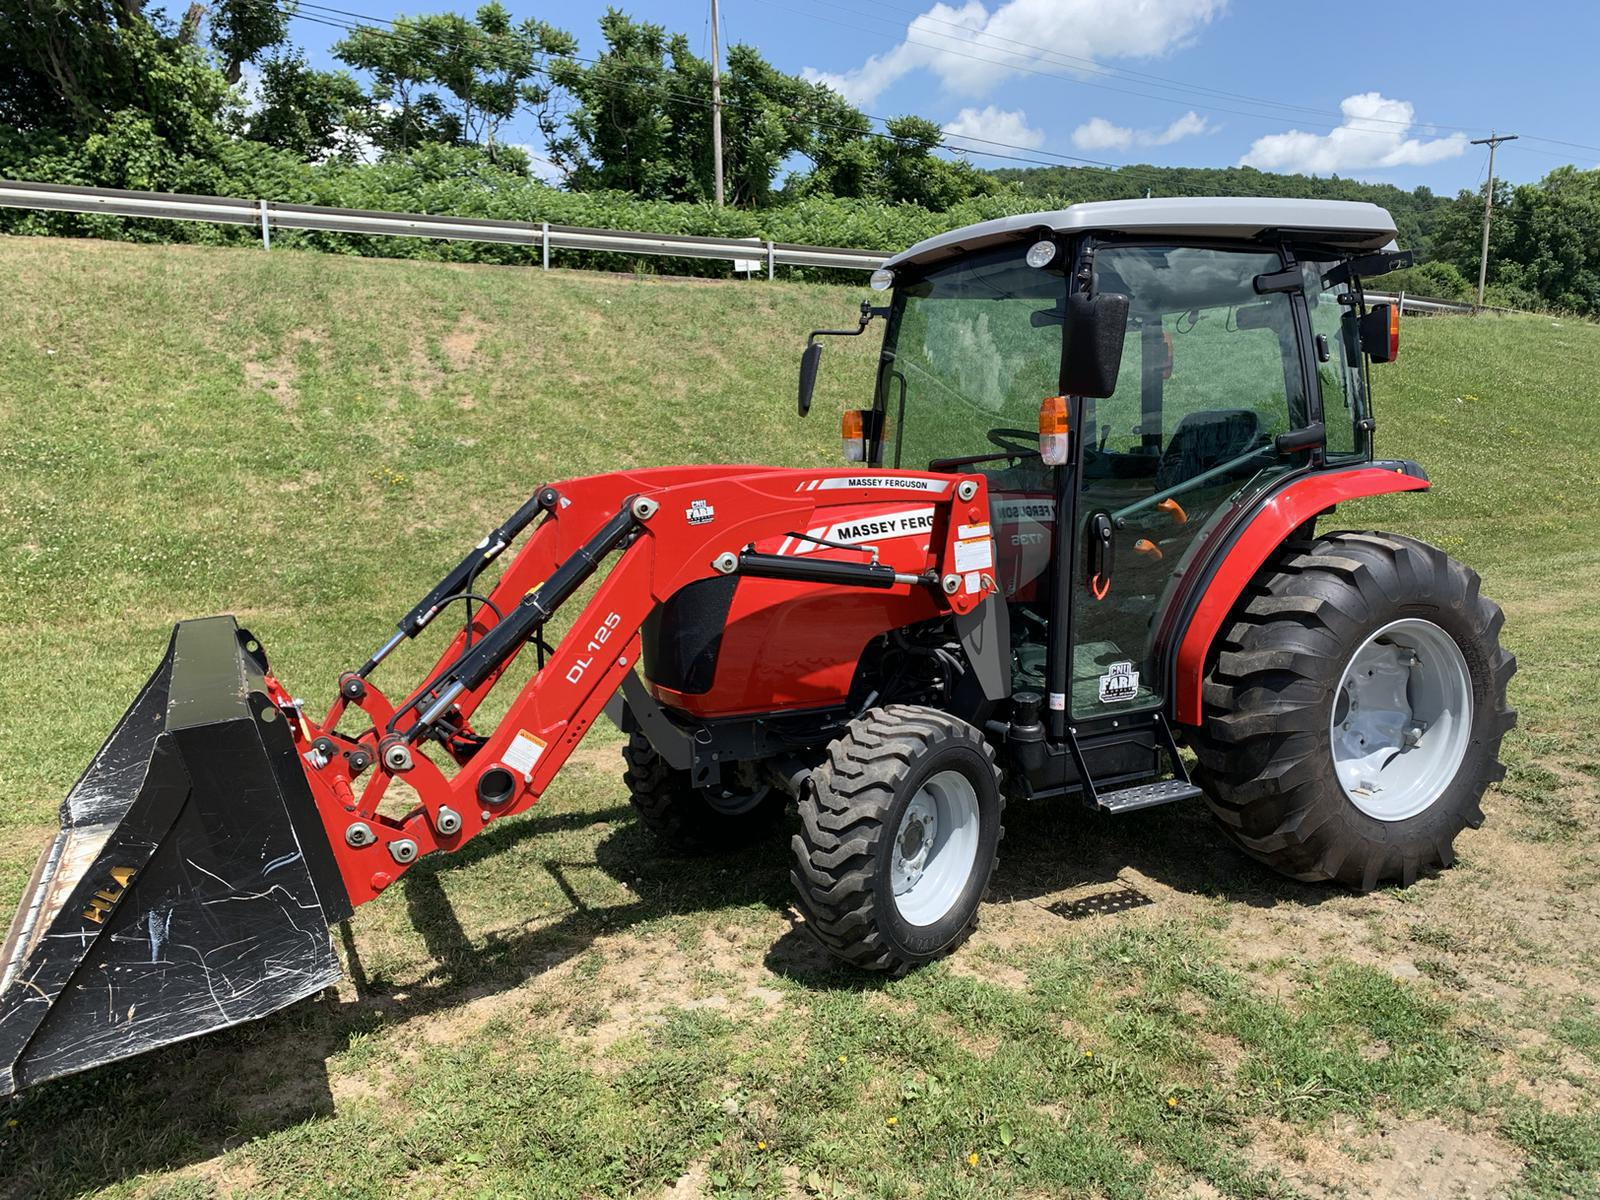 Inventory from Massey Ferguson and New Holland Construction